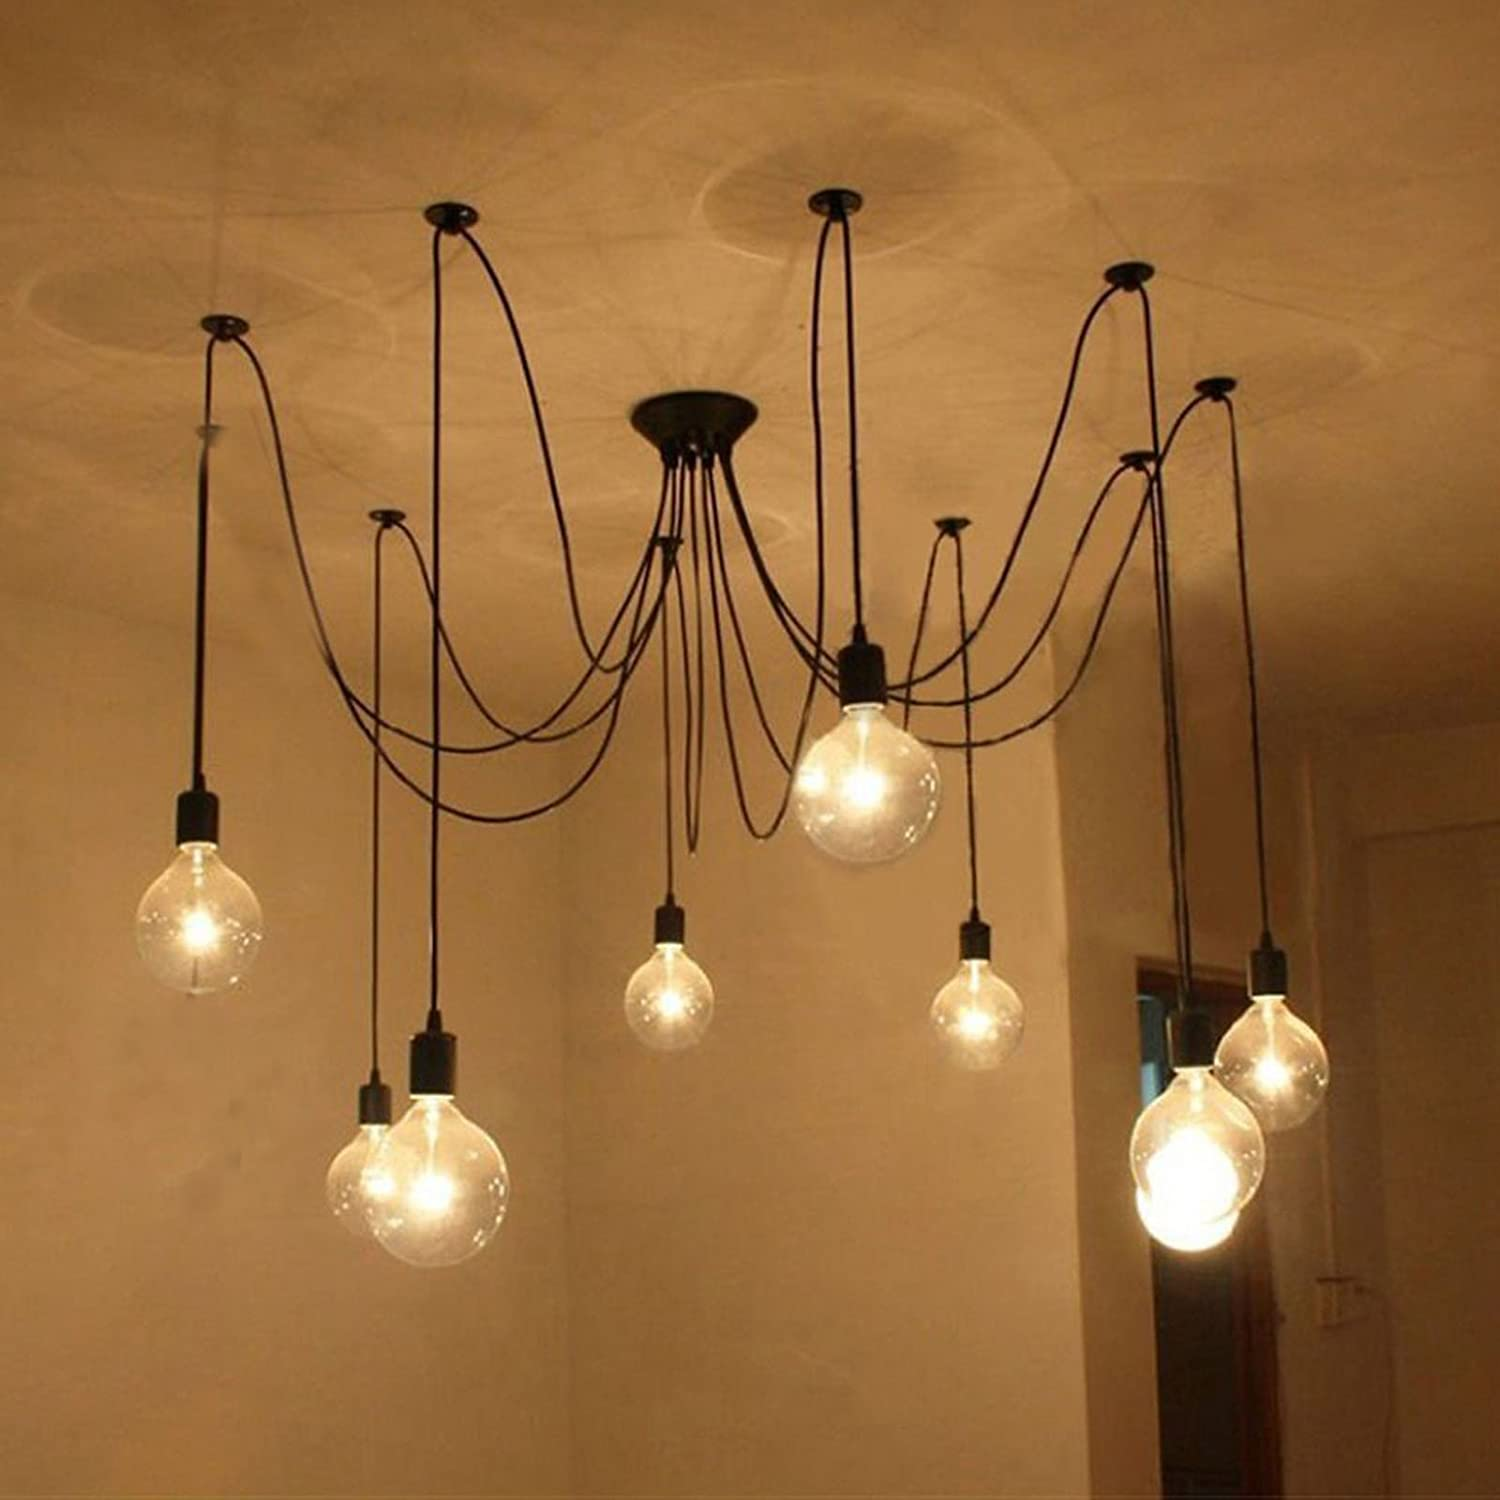 ceiling heads wire living lamp eletrical in looking with good room from lamps edison item home for spider light pendant vintage lights